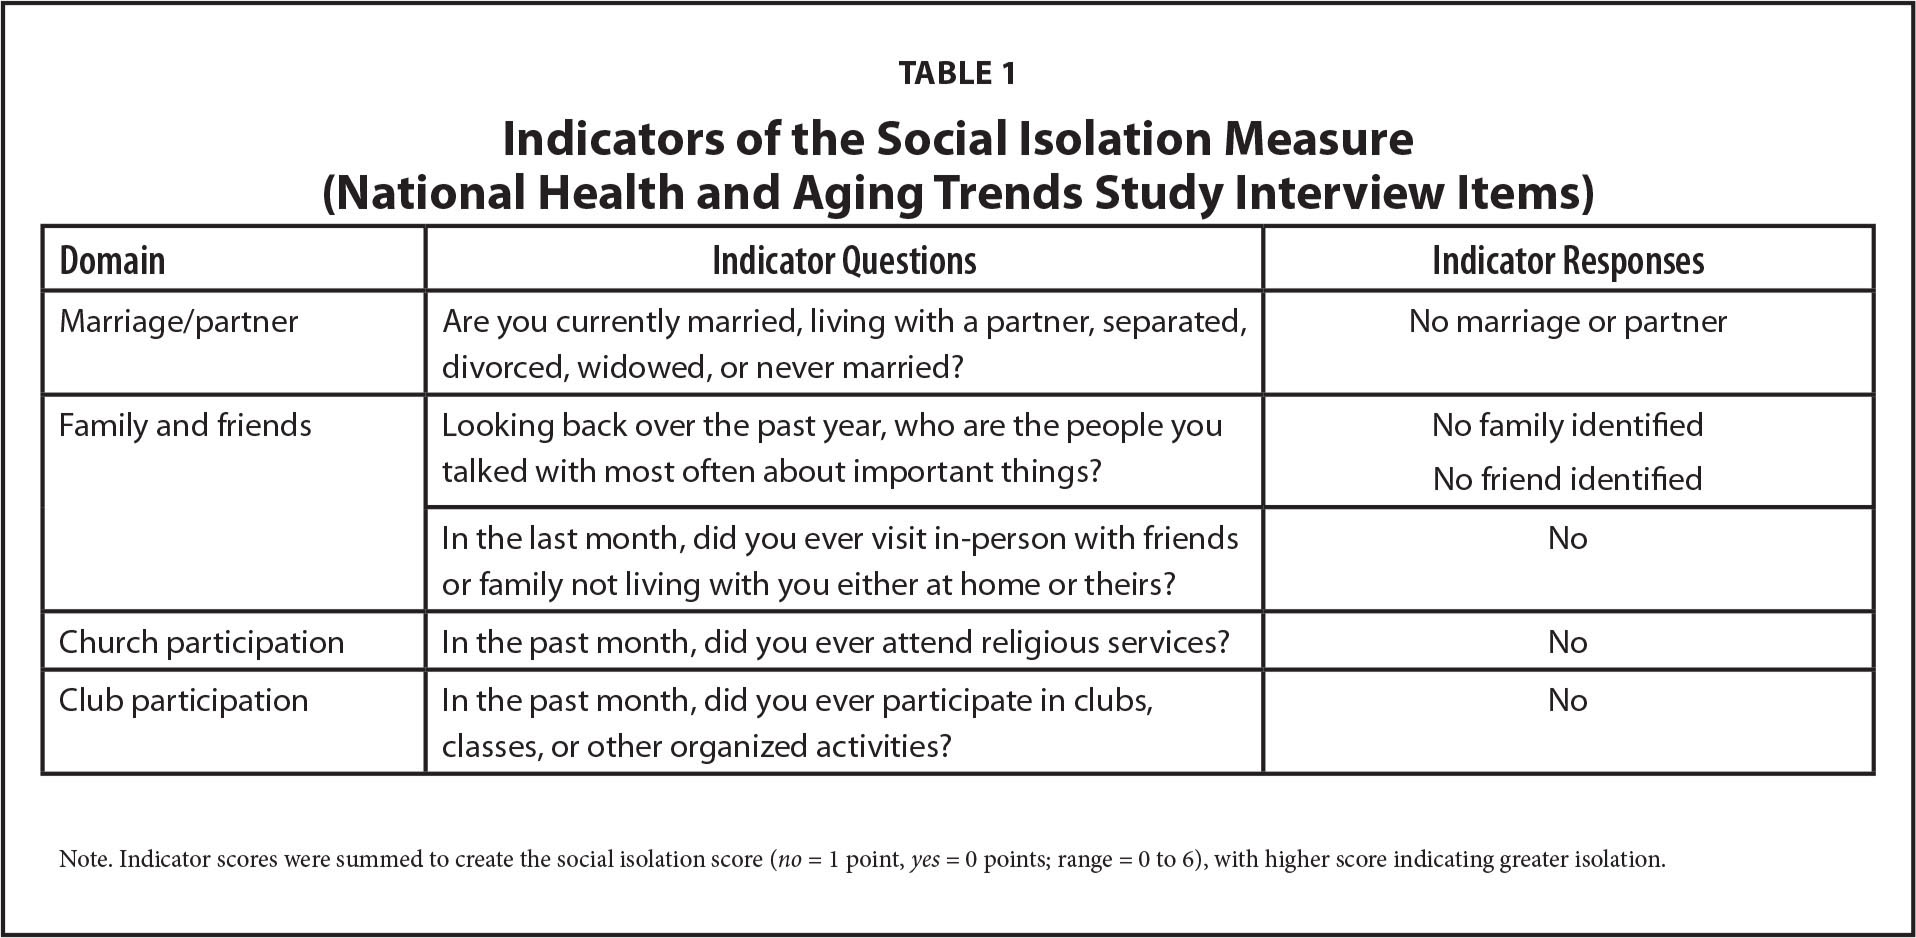 Indicators of the Social Isolation Measure (National Health and Aging Trends Study Interview Items)